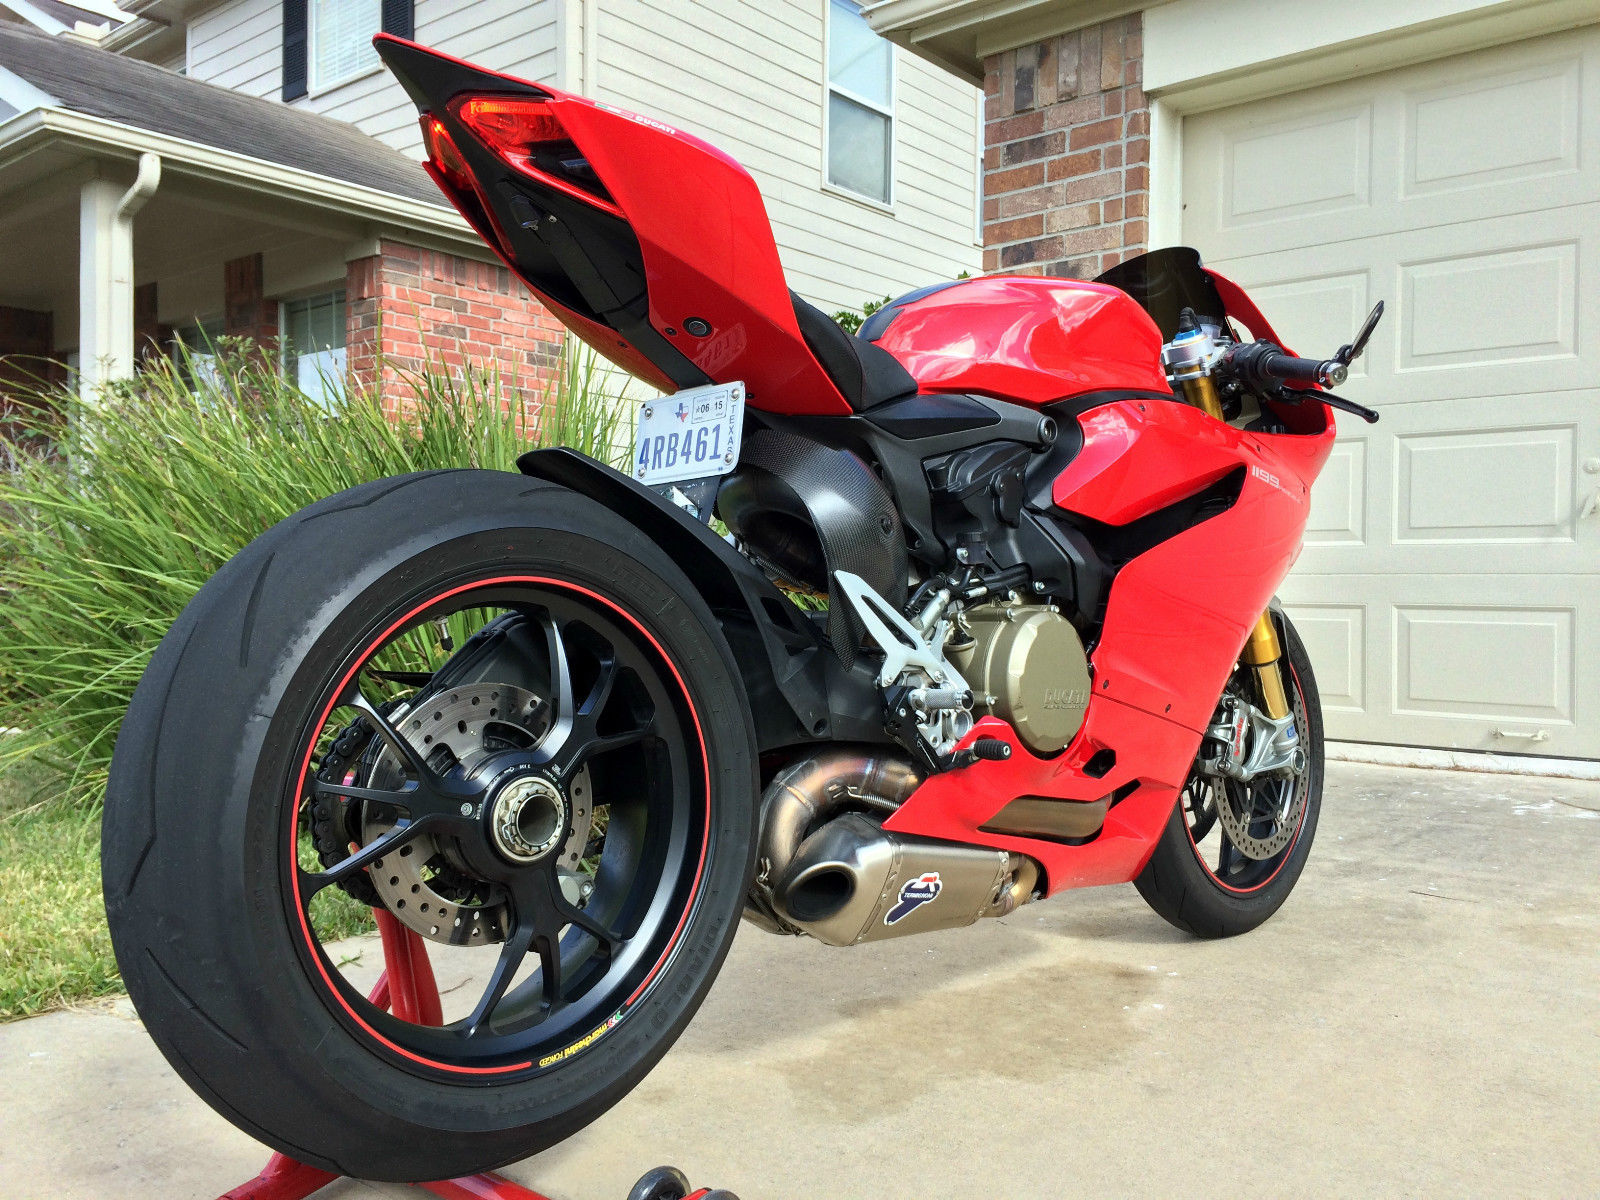 1199s Panigale Abs W Termignoni Full Exhaust